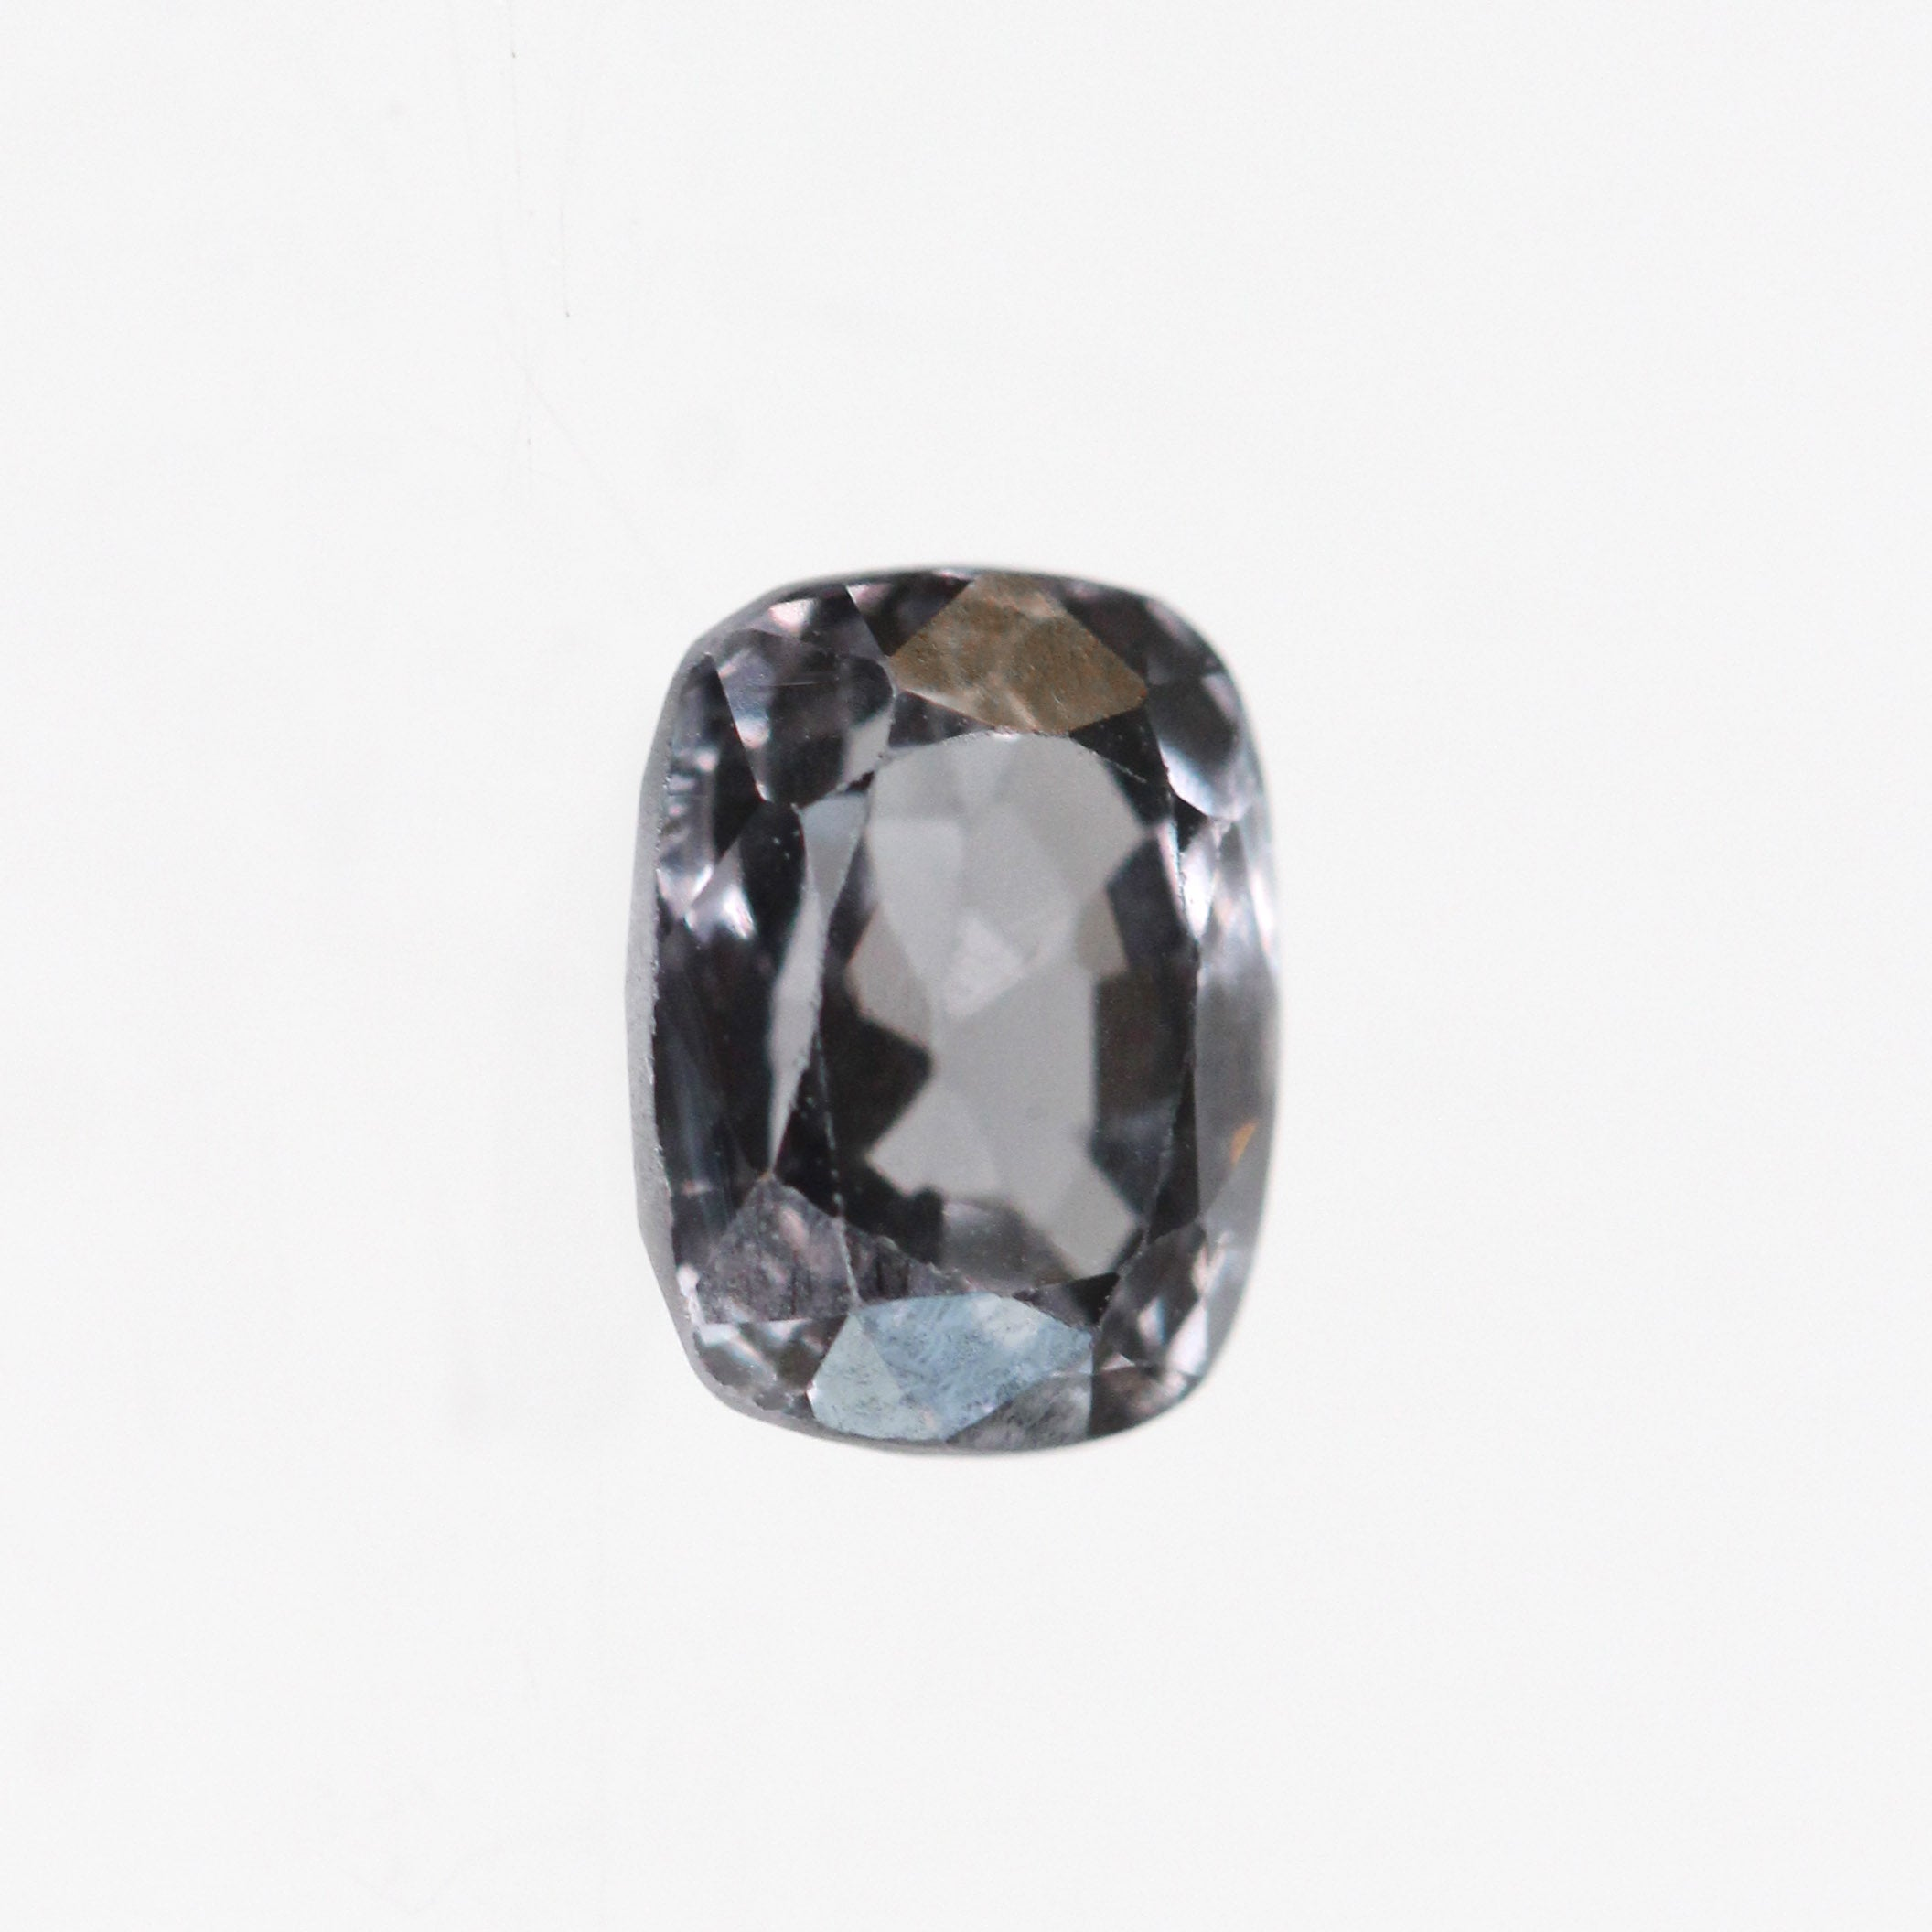 .70ct Cushion Cut Spinel for Custom Work - Inventory Code SP6.4 - Celestial Diamonds ® by Midwinter Co.